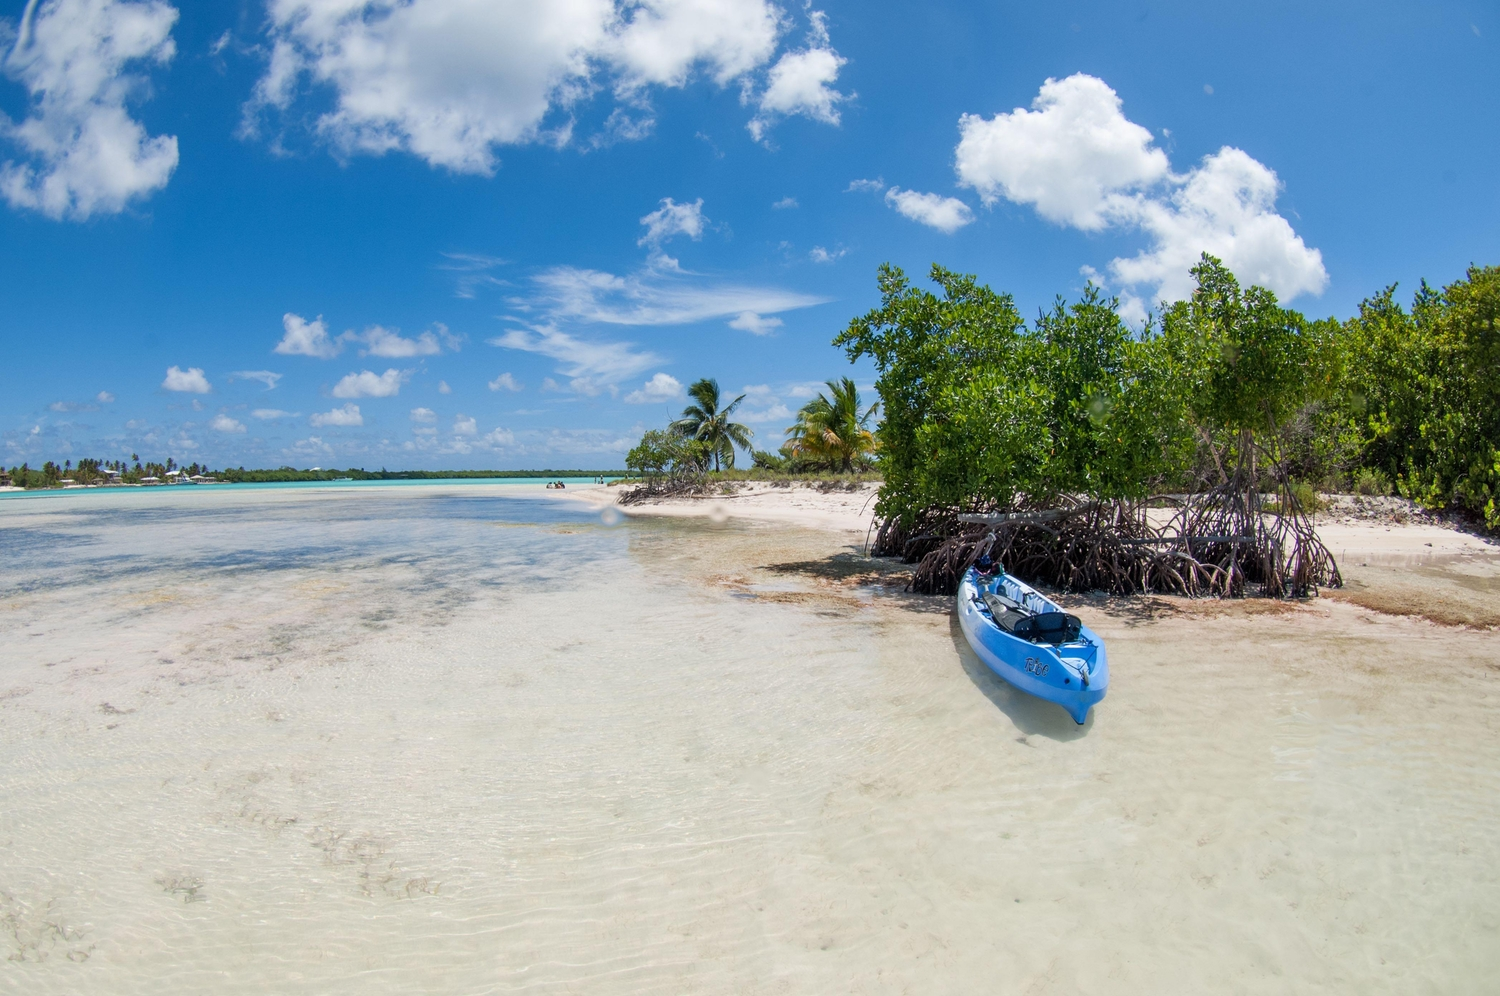 Beachy view of Sand Cay at Little Cayman with a blue kayak